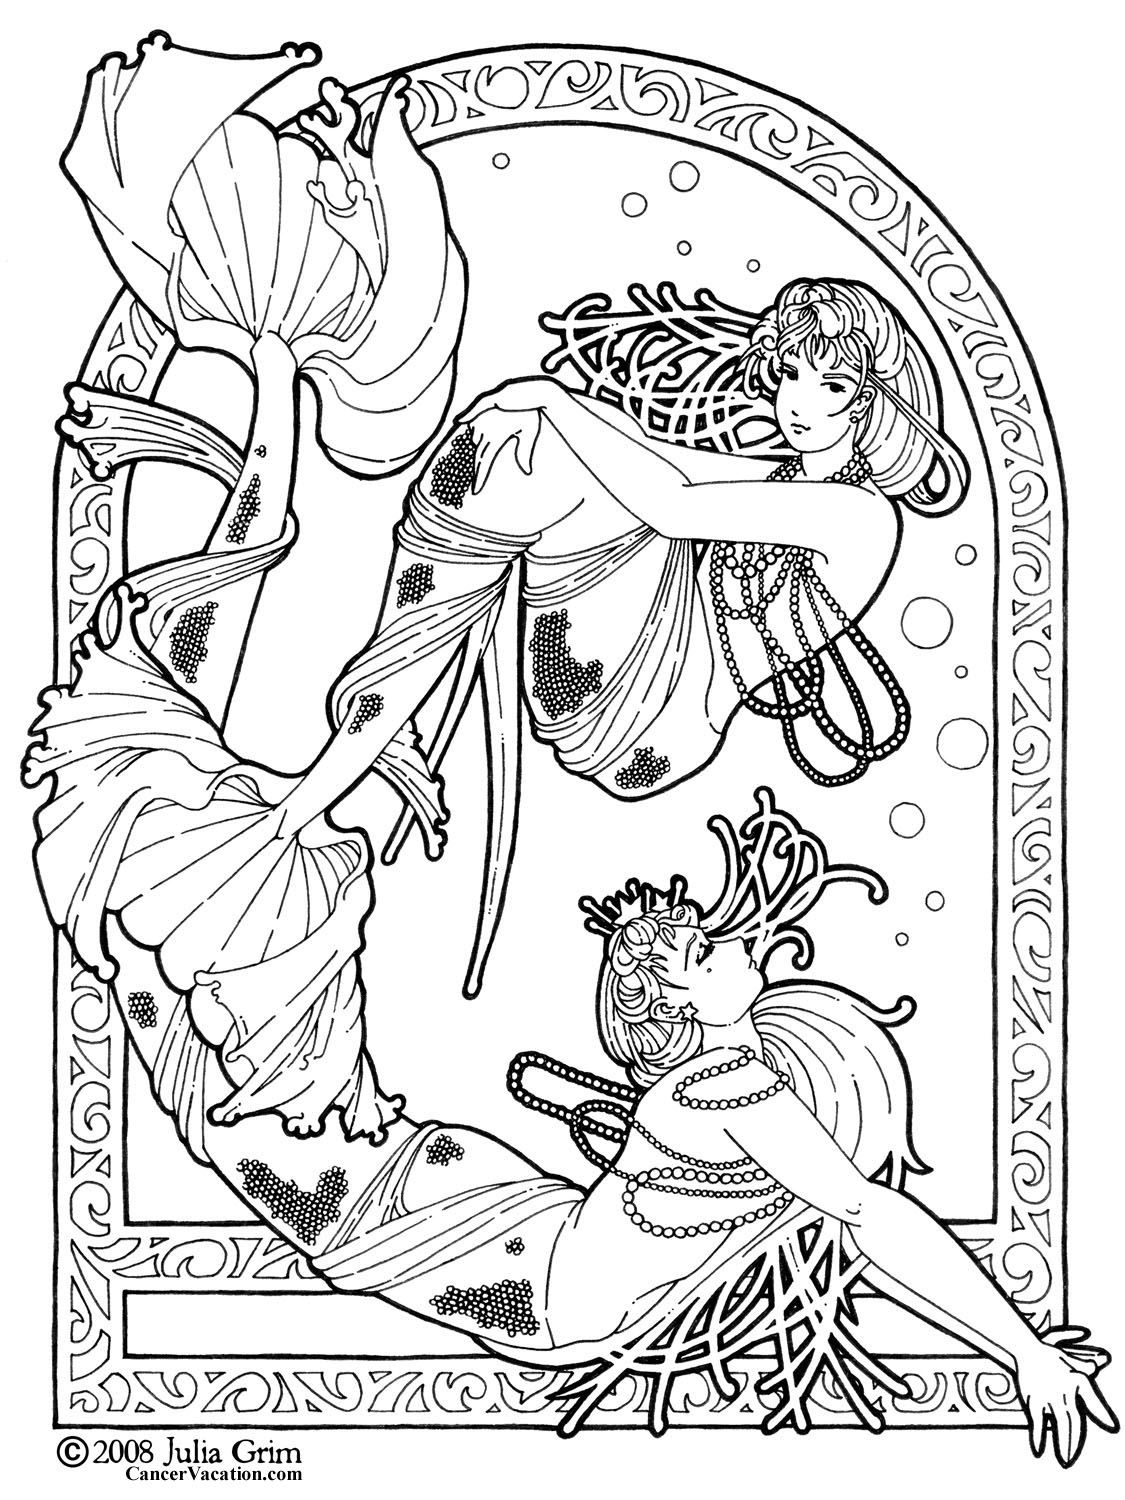 mermaids adult colouring page by julia grim - Fantasy Coloring Books For Adults